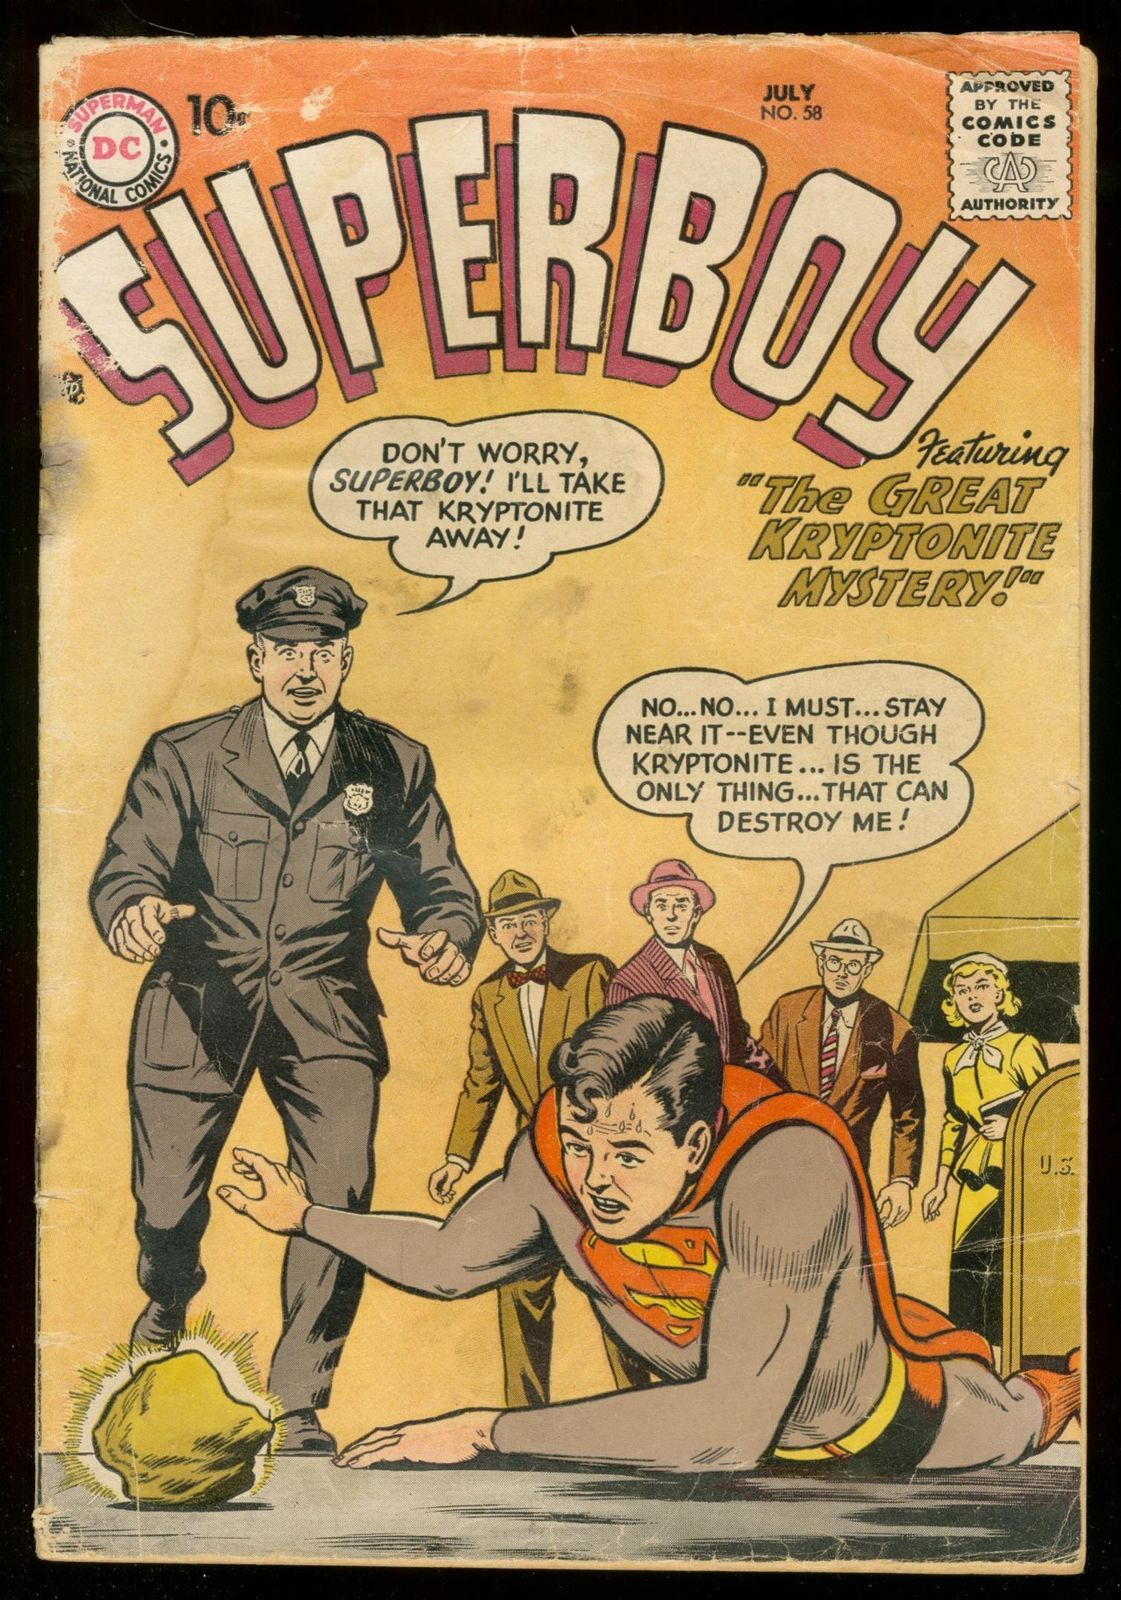 SUPERBOY #58 1957 DC COMICS KRYPTONITE COVER SILVER AGE FR